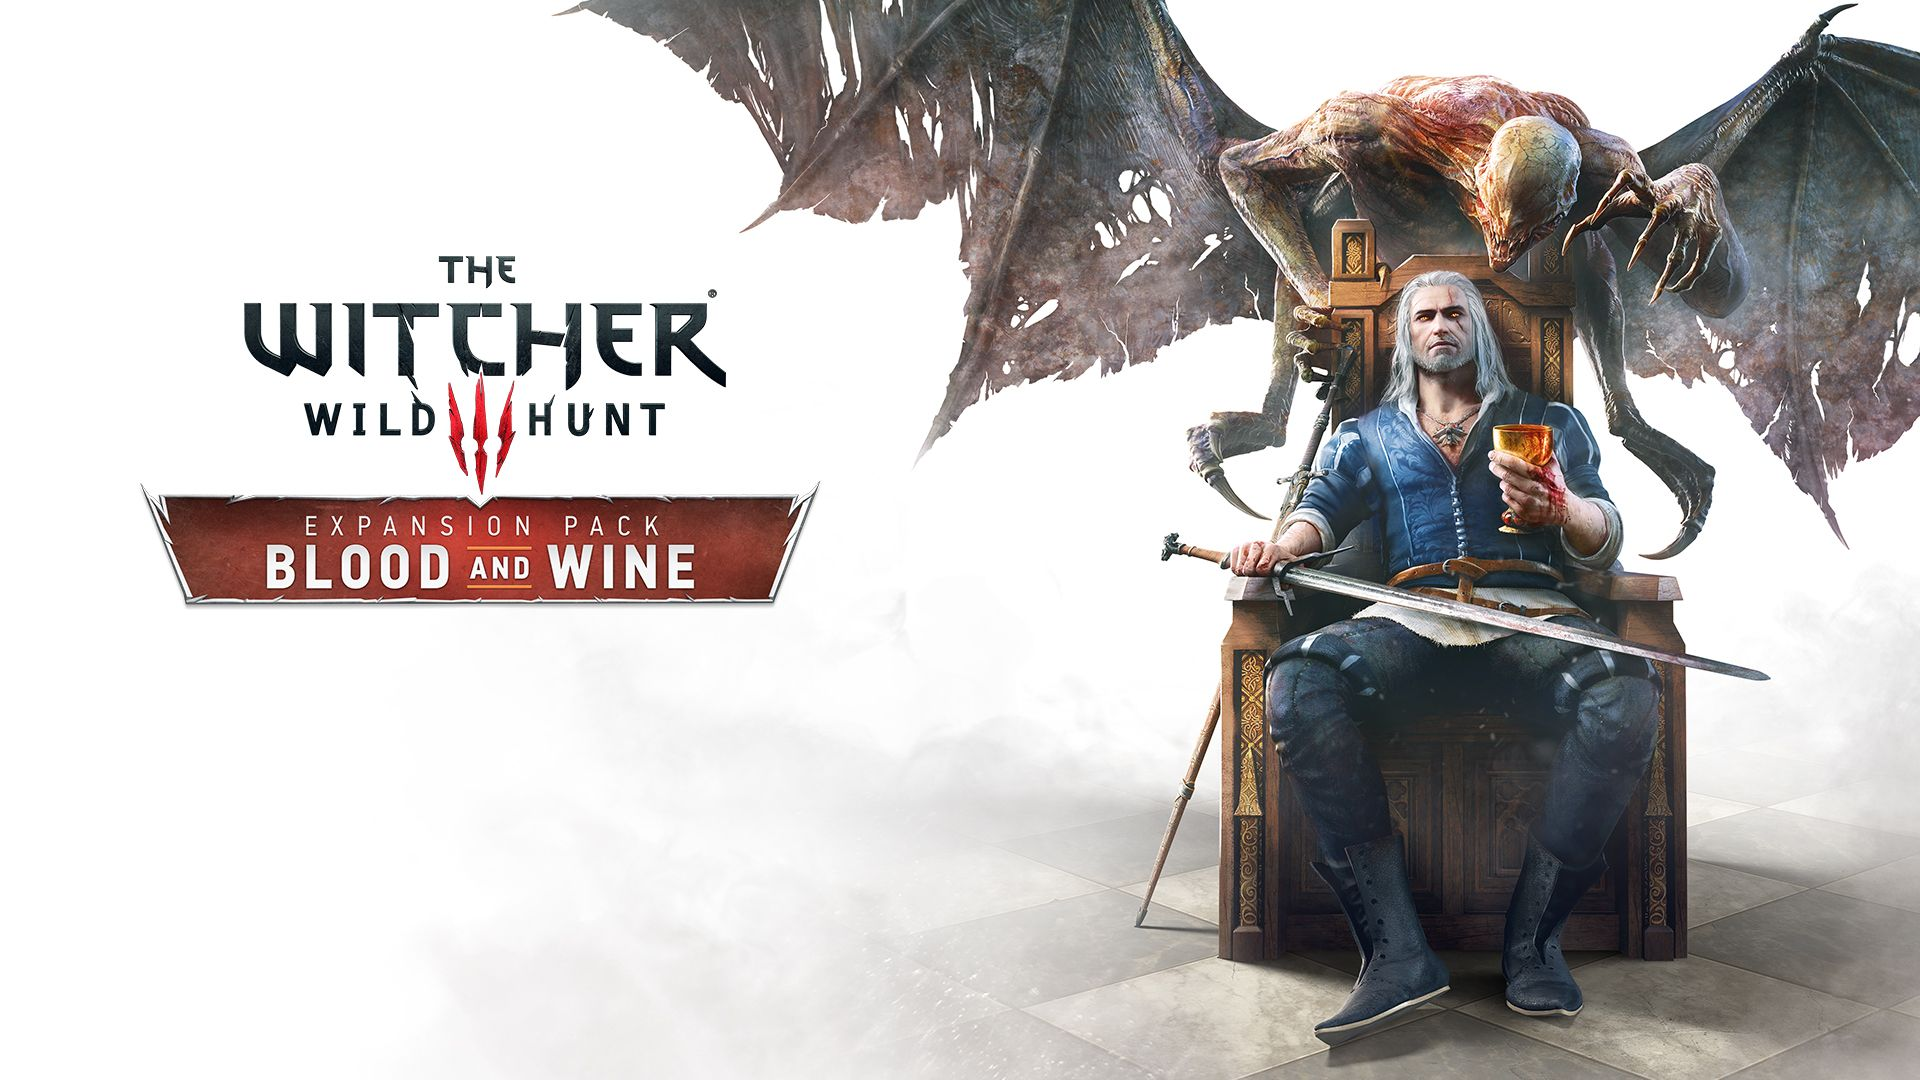 Witcher 3 Blood And Wine Dlc Wallpaper The Witcher The Witcher